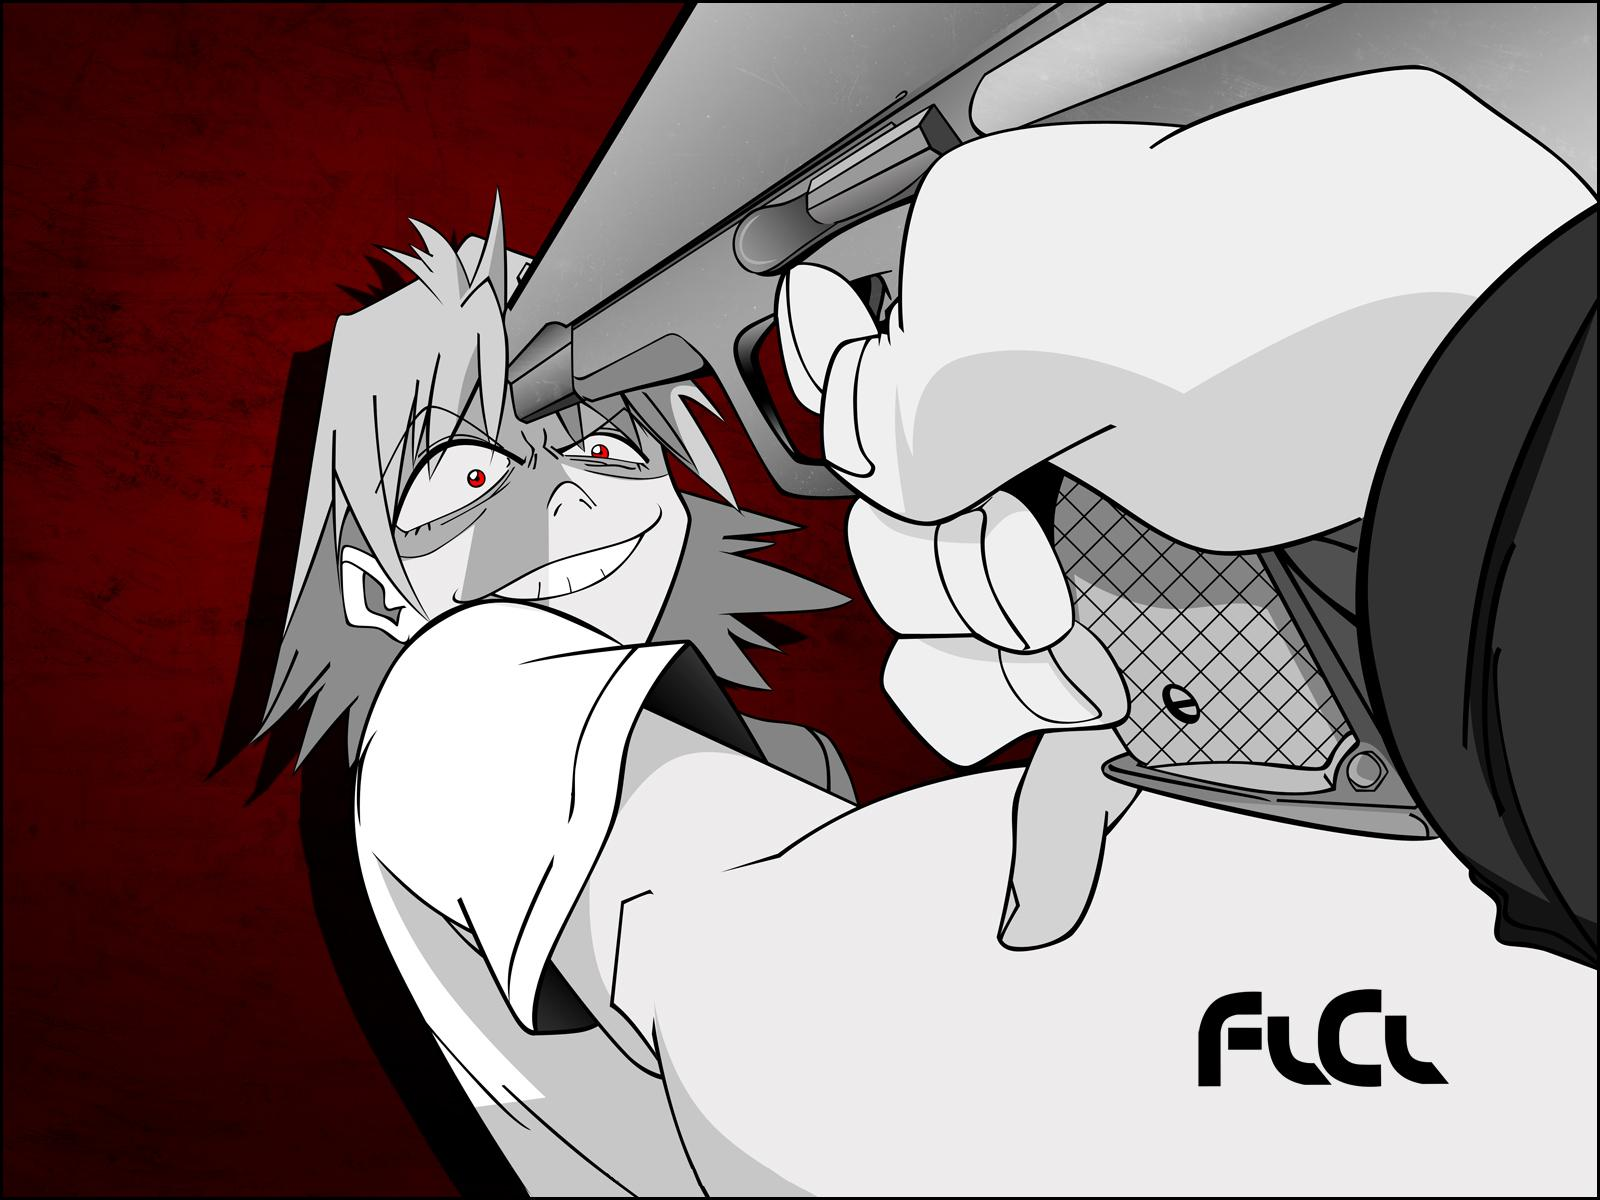 Flcl wallpaper and background image 1600x1200 id 69933 - Flcl wallpaper ...